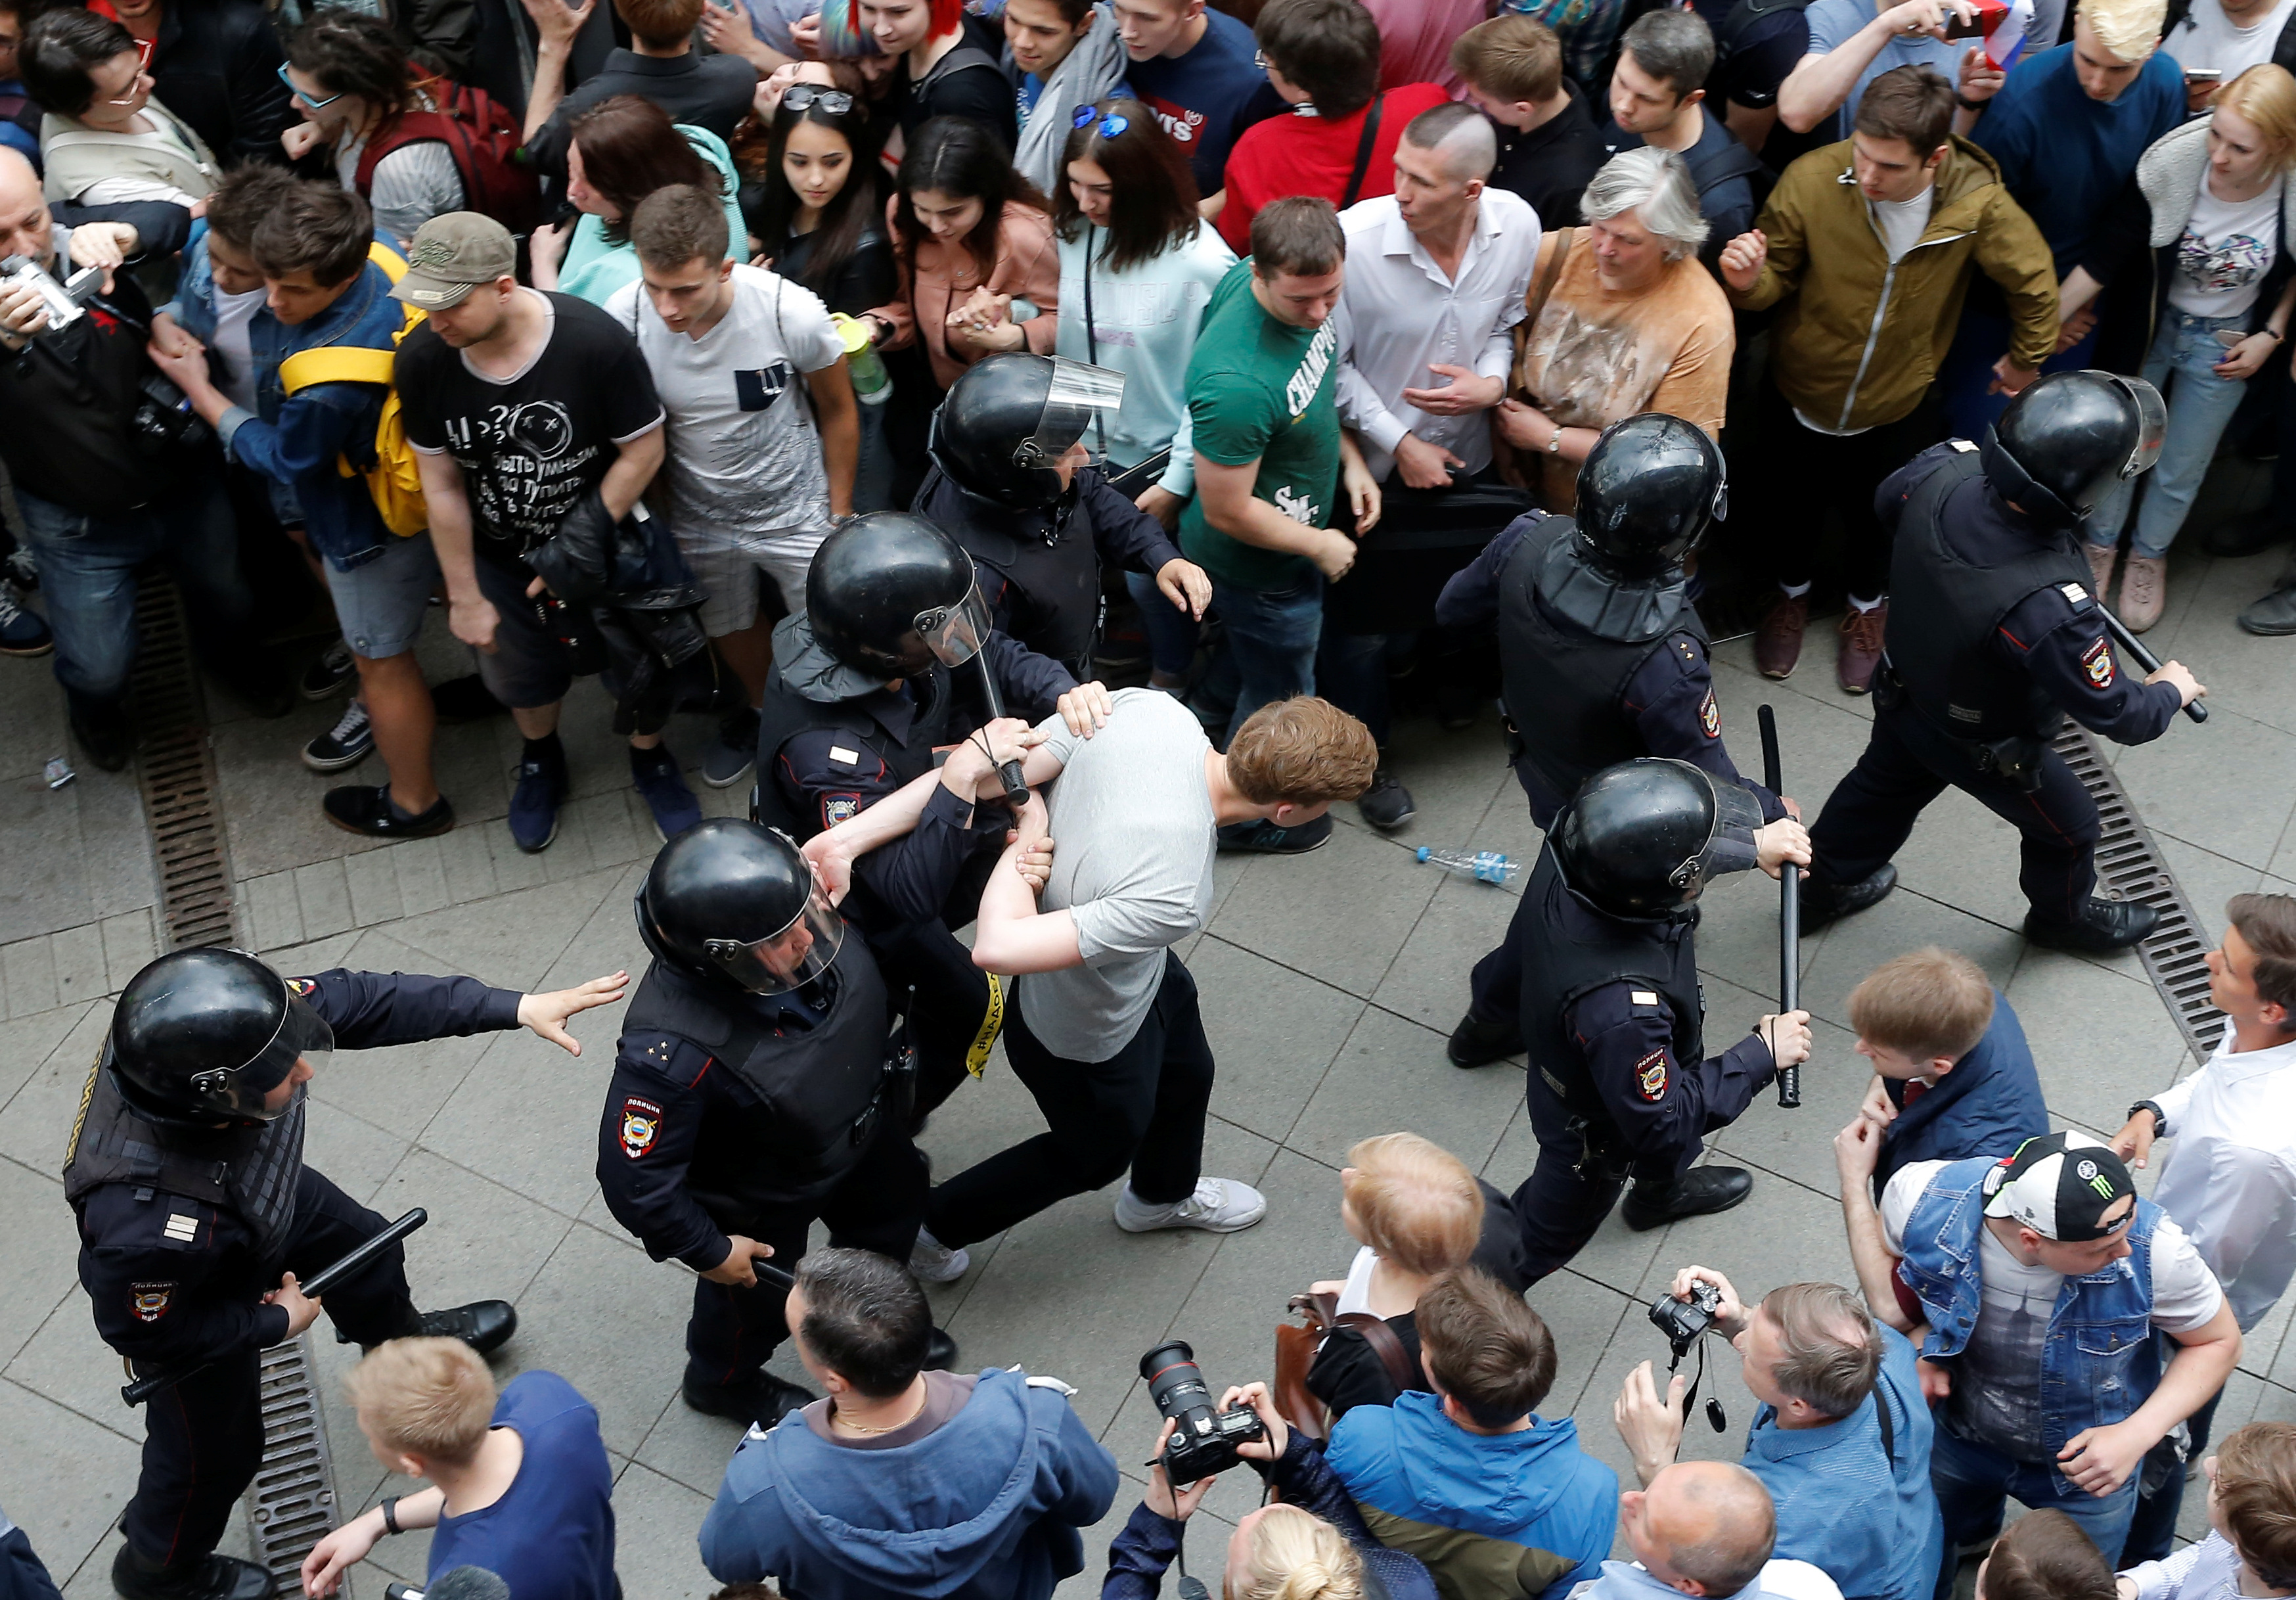 Riot police detain a demonstrator during an anti-corruption protest organised by opposition leader Alexei Navalny, on Tverskaya Street in central Moscow.